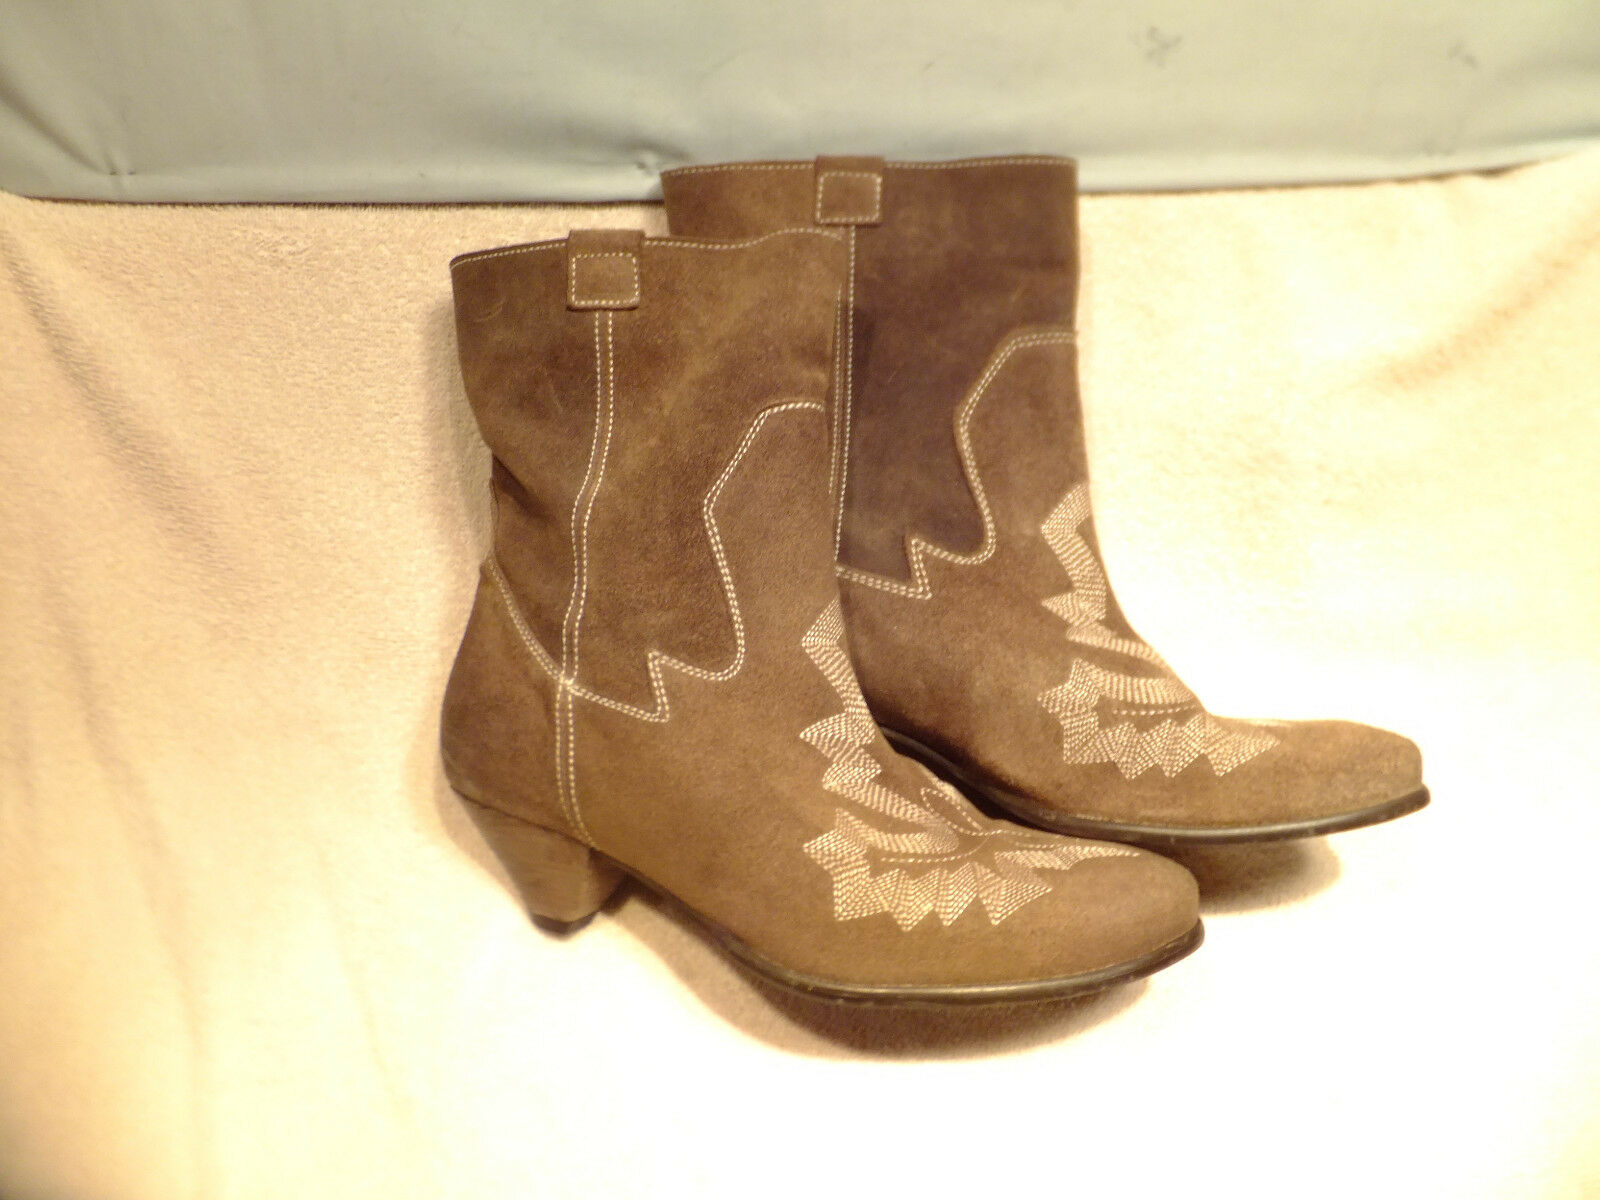 67 Sixty Seven - Shadowridge Brown Suede Leather Ankle Boots  Quite Nice